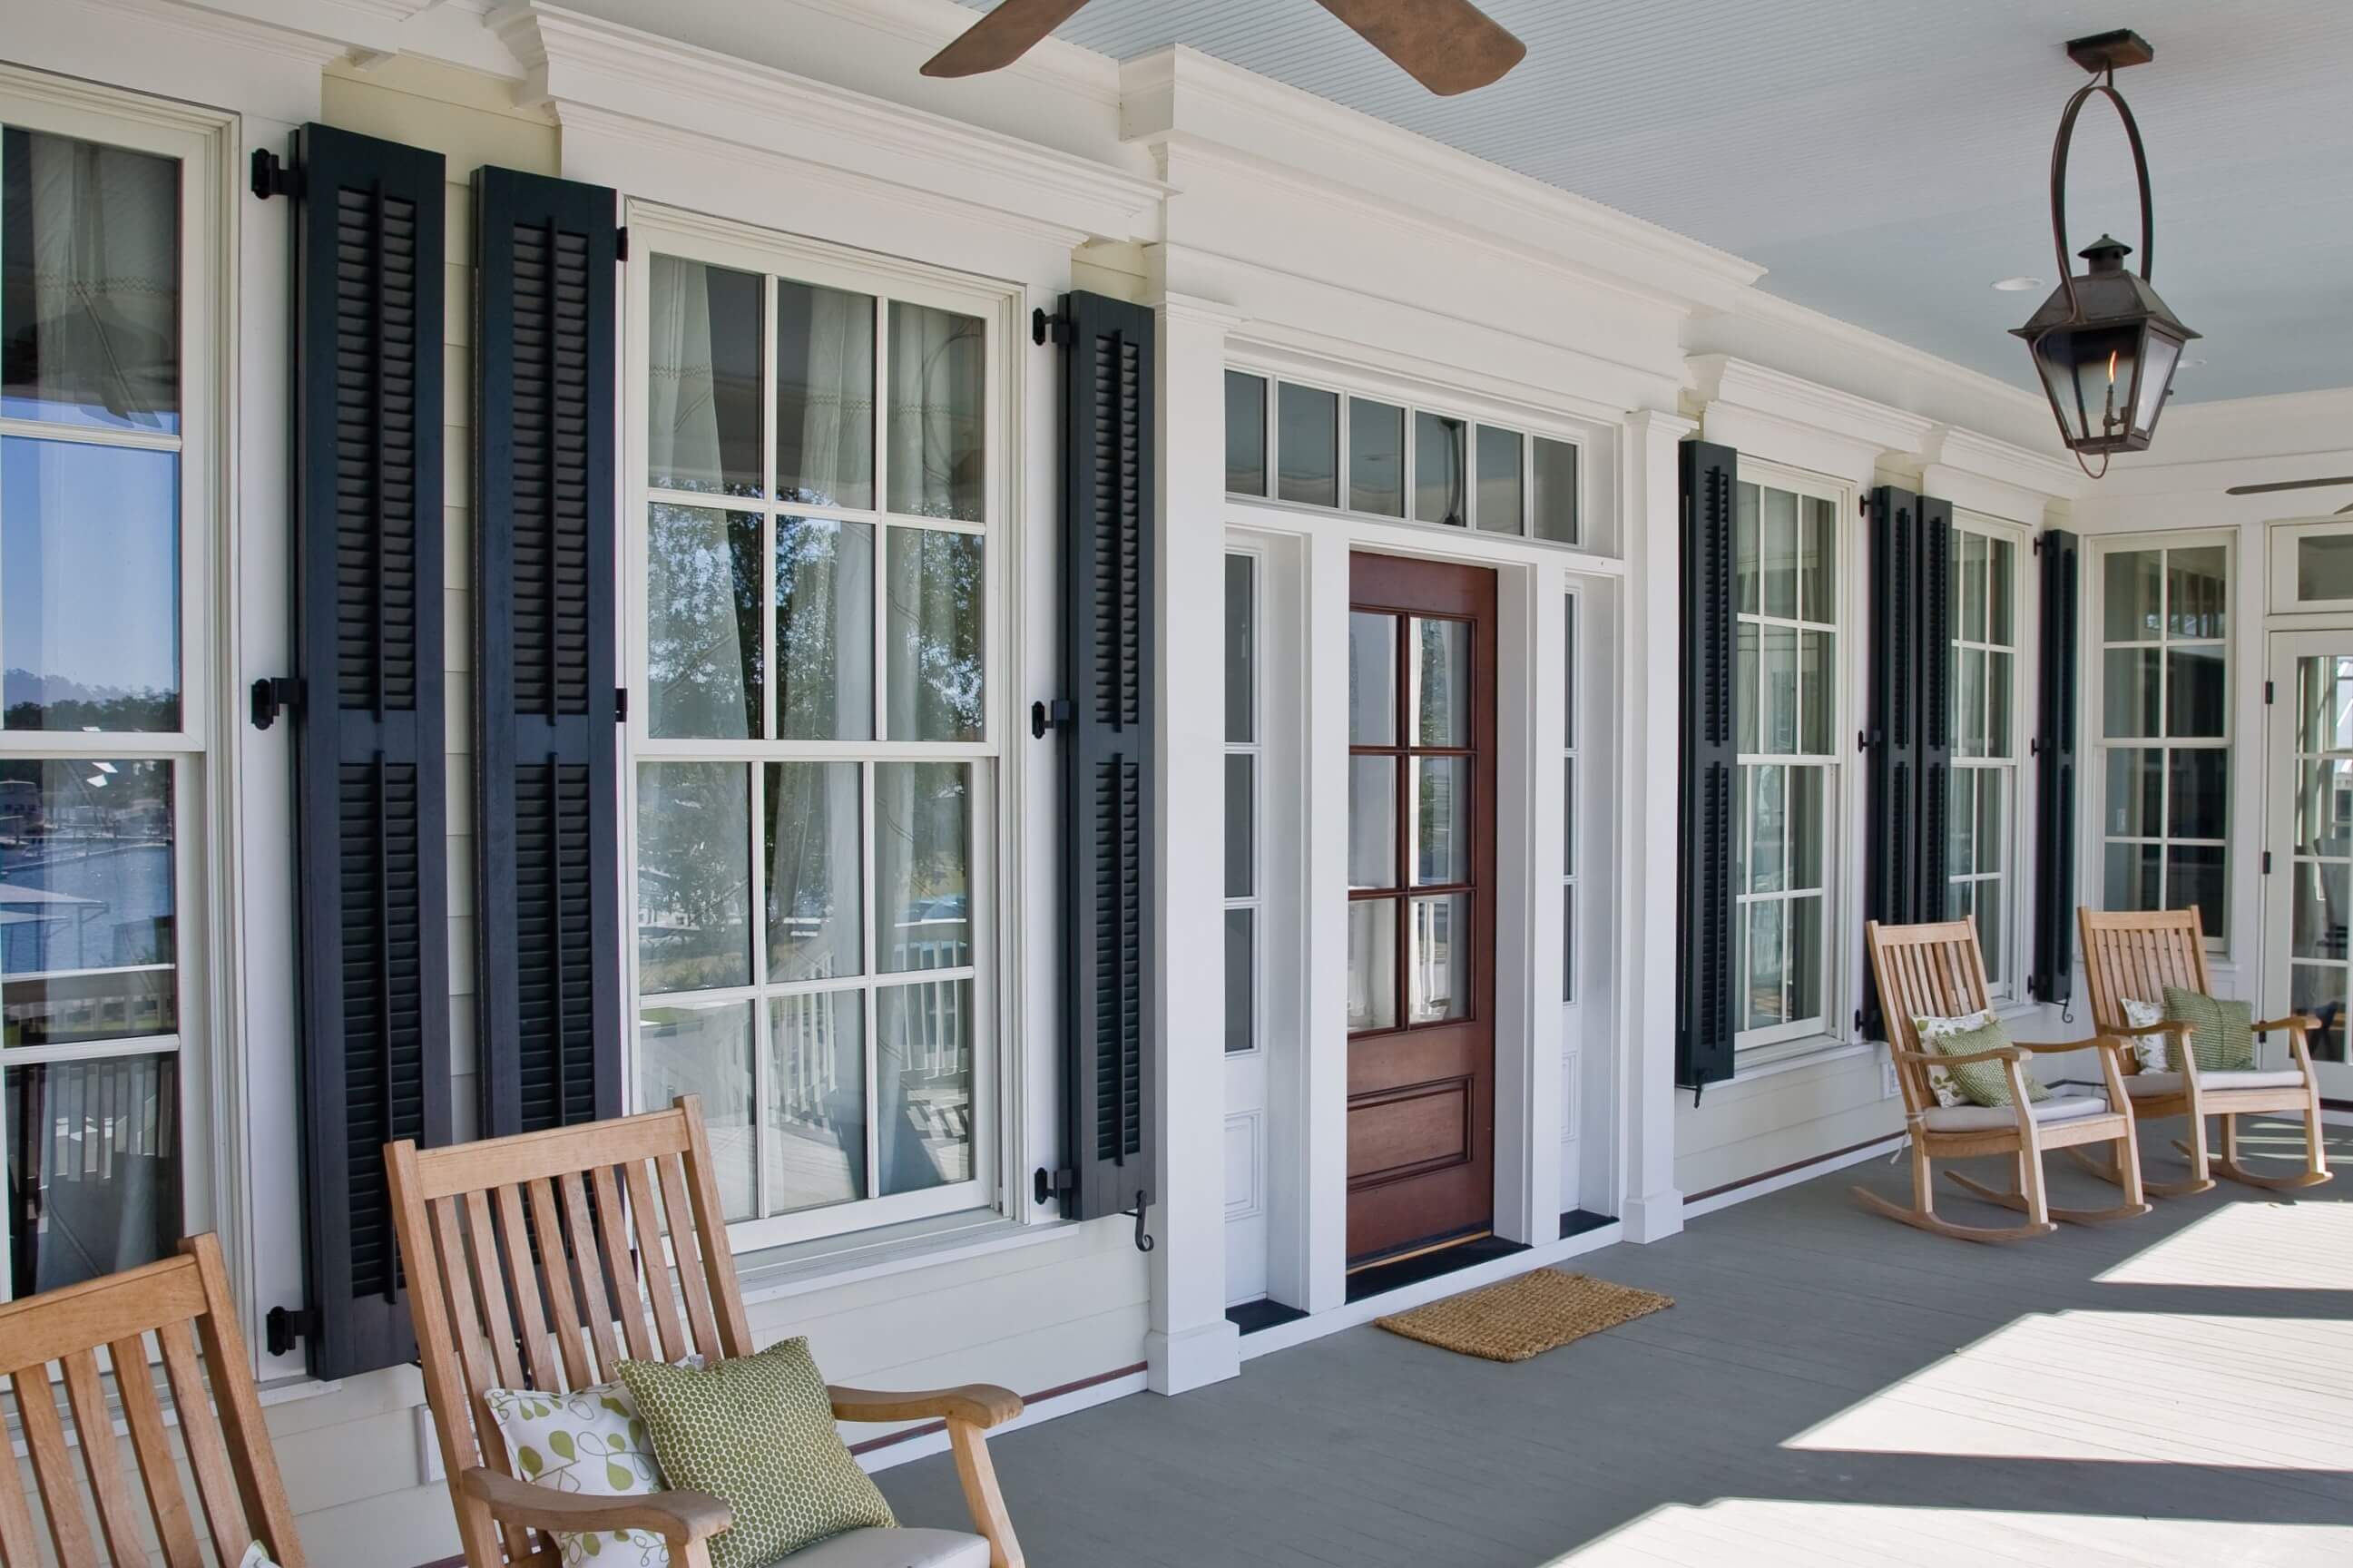 SOLID WOOD EXTERIOR SHUTTERS